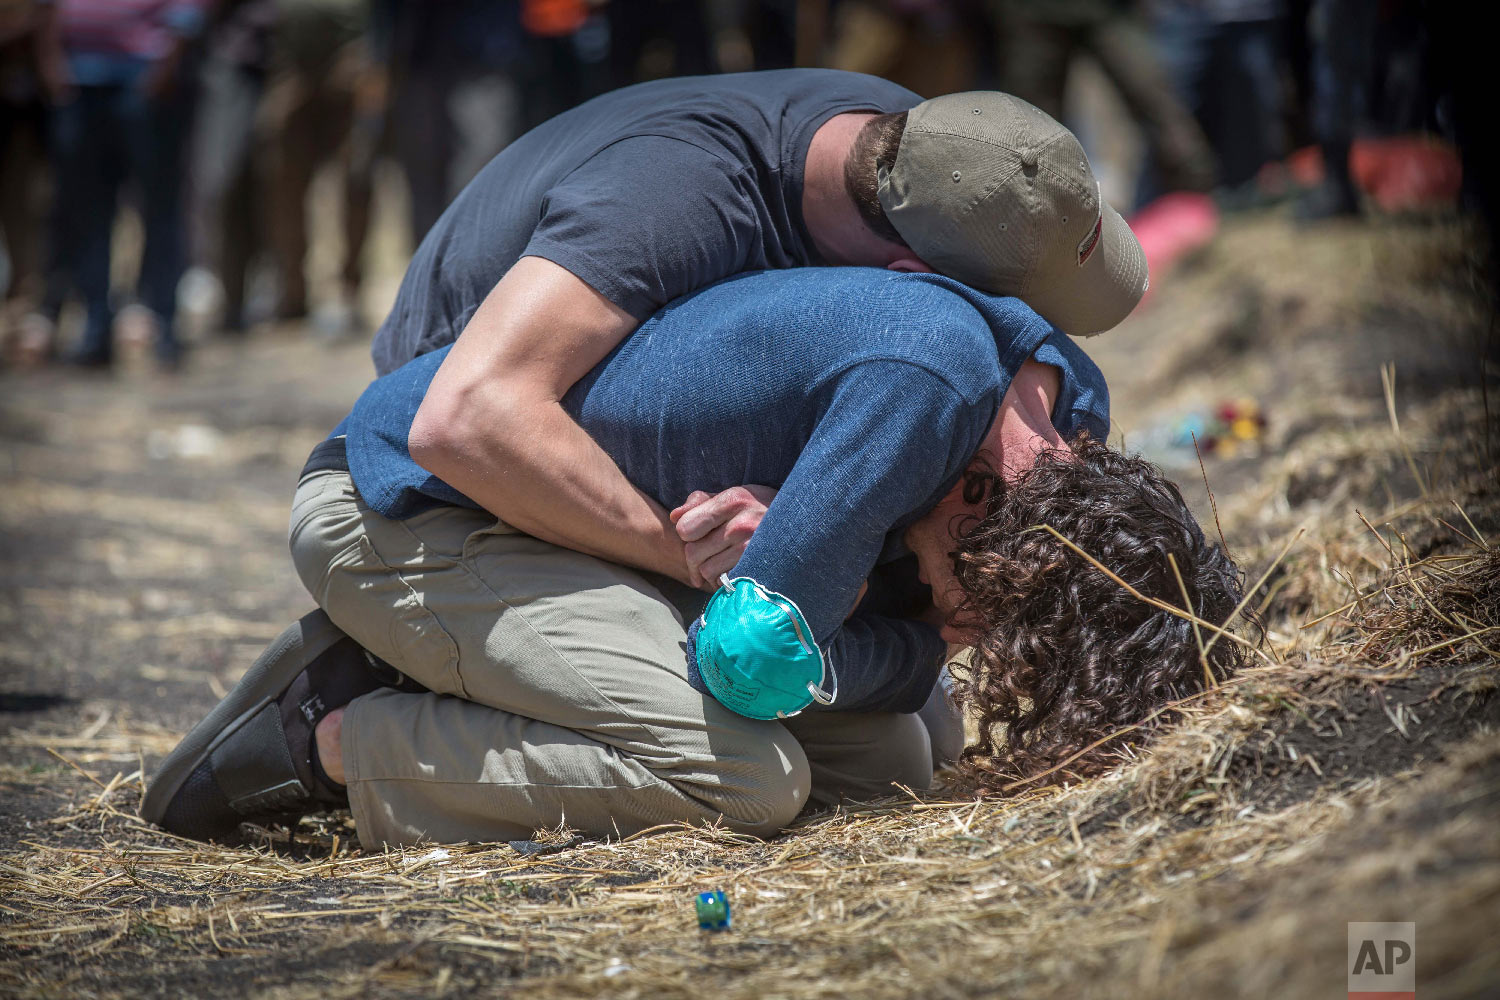 Relatives react at the scene where the Ethiopian Airlines Boeing 737 Max 8 crashed shortly after takeoff on Sunday near Bishoftu, Ethiopia, March 13, 2019. (AP Photo/Mulugeta Ayene)